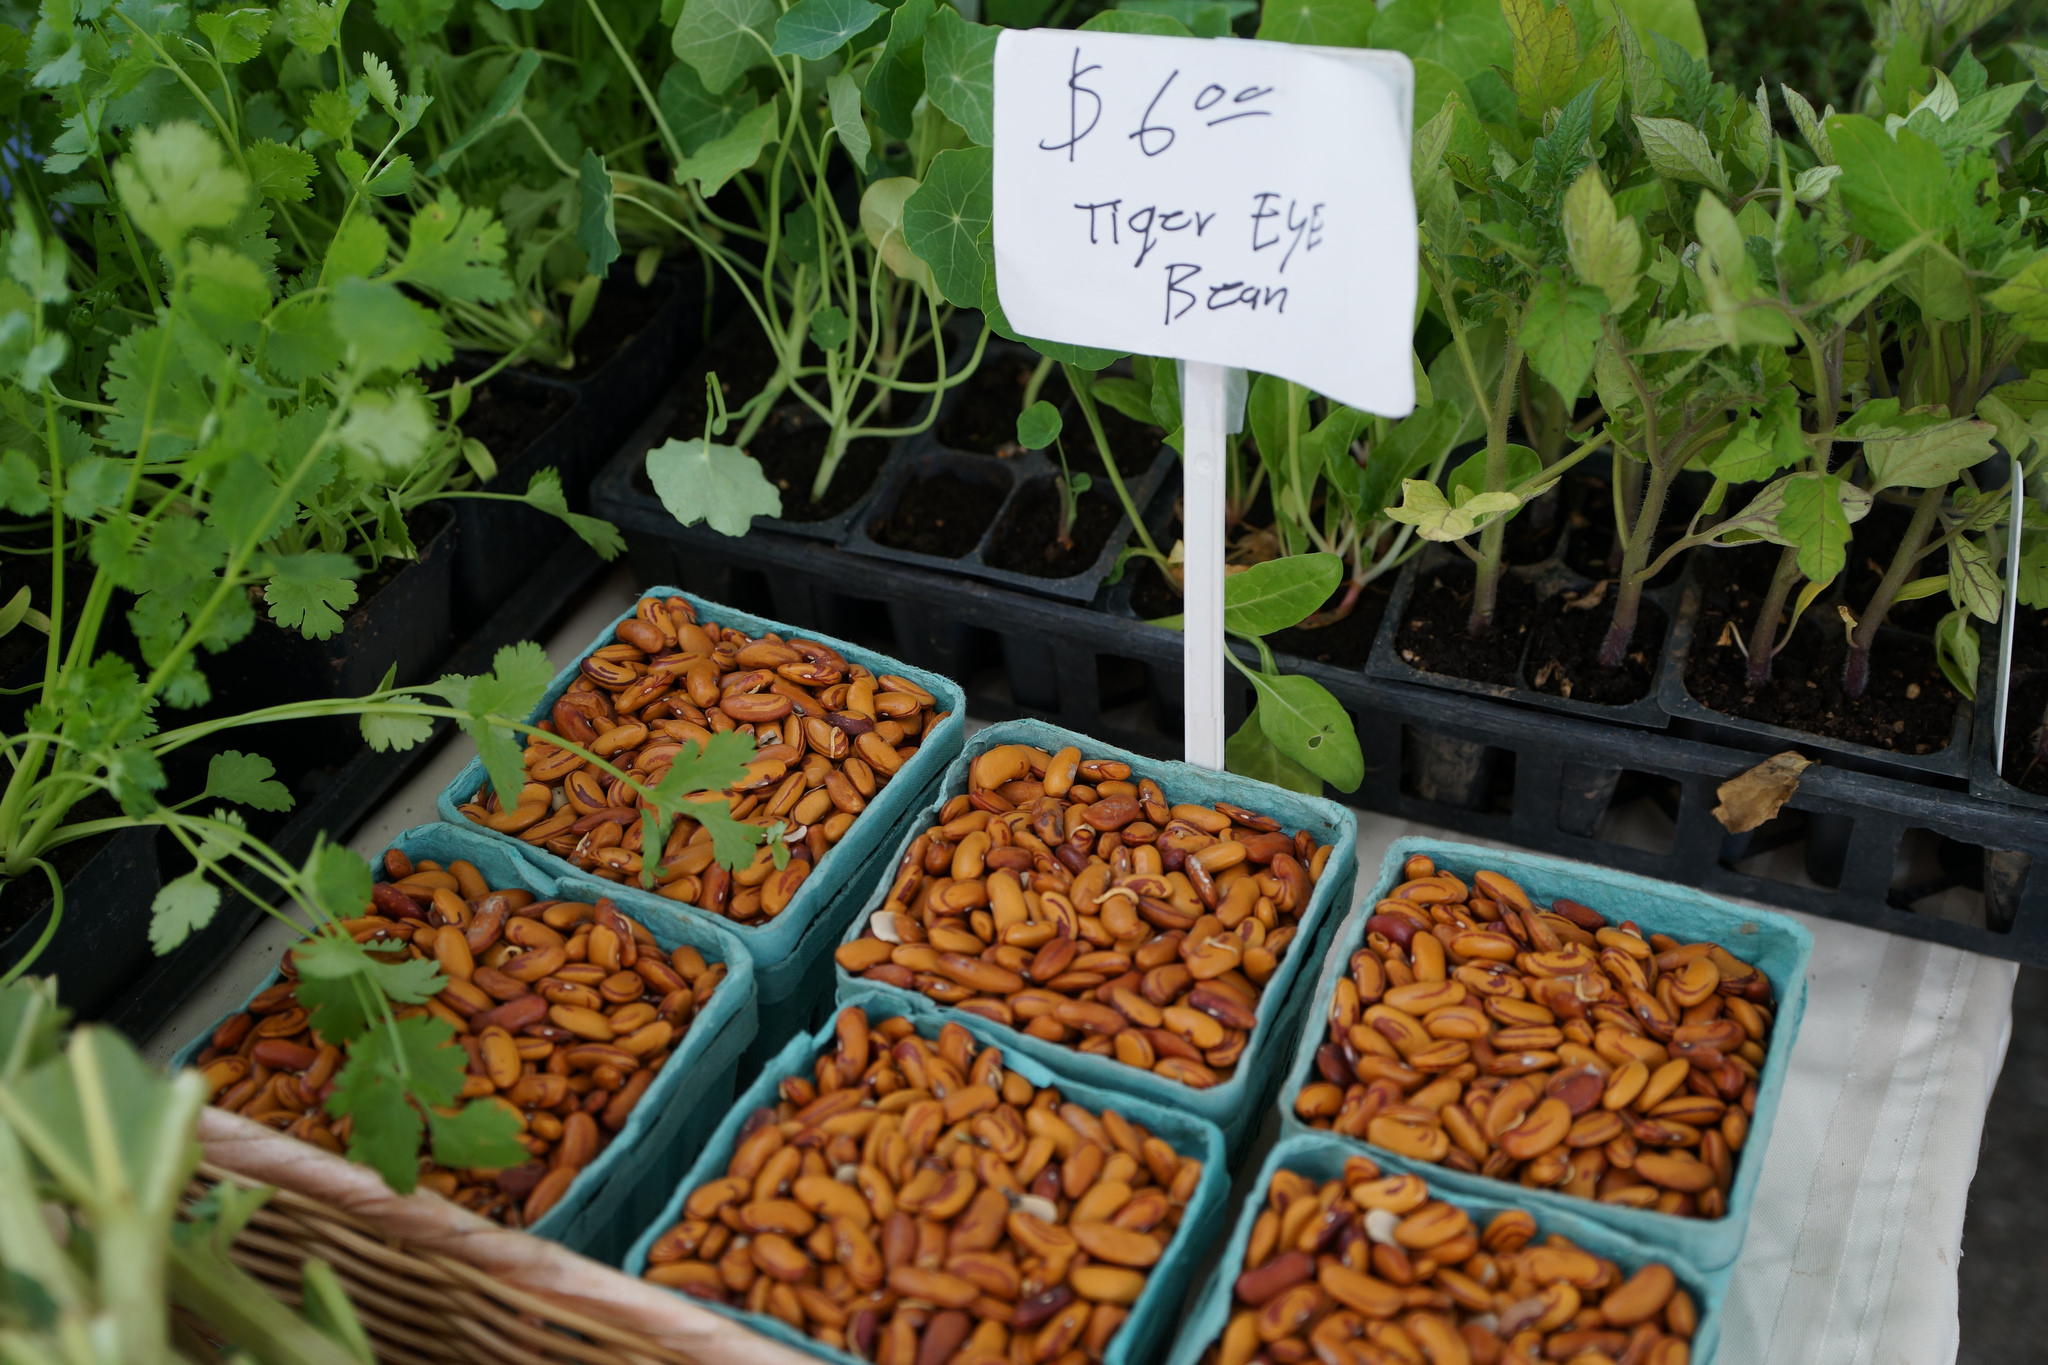 Spring plants and dry beans